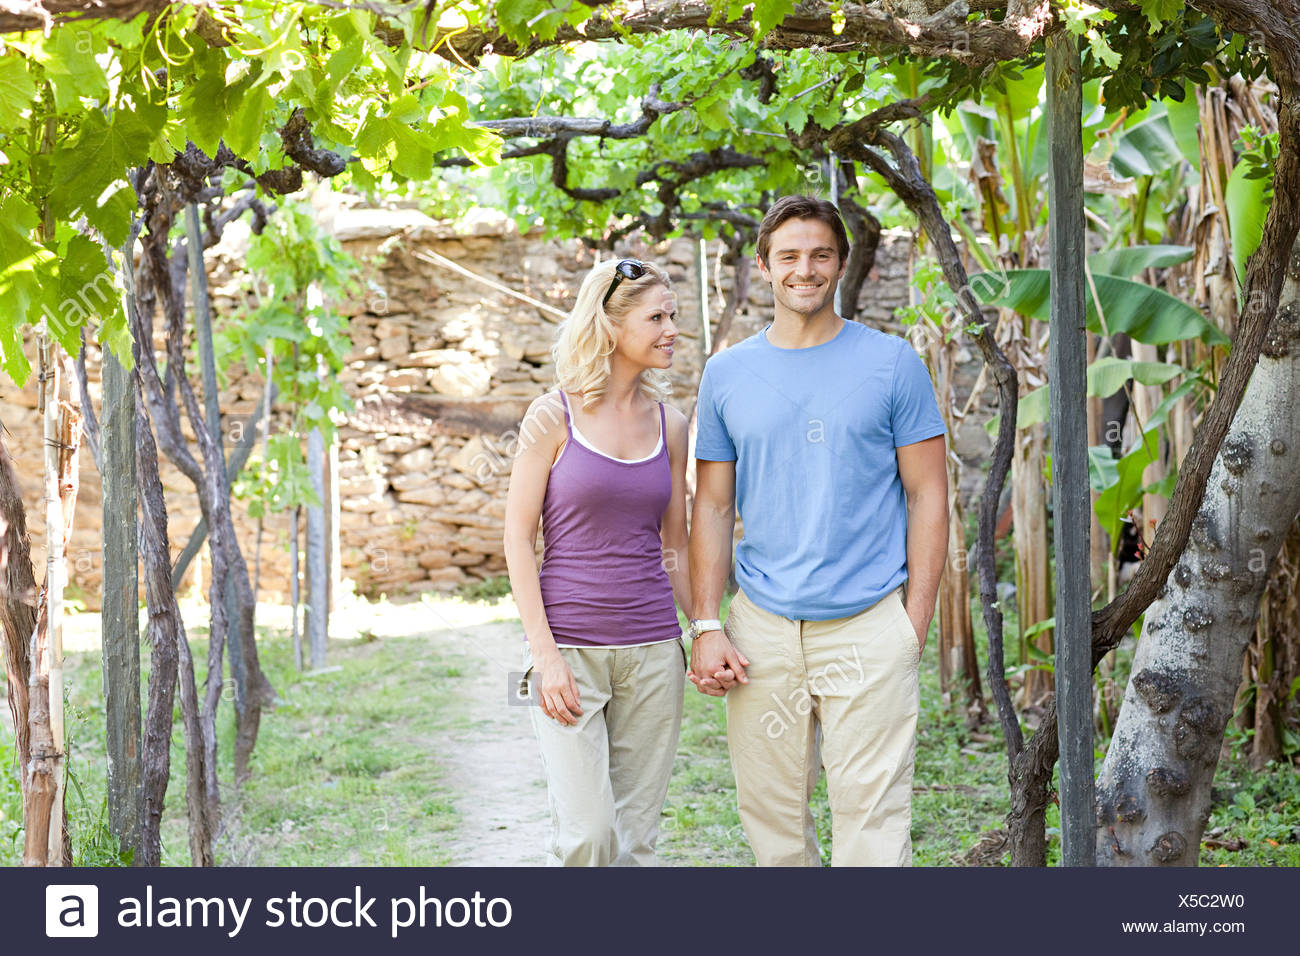 Couple in a vineyard - Stock Image